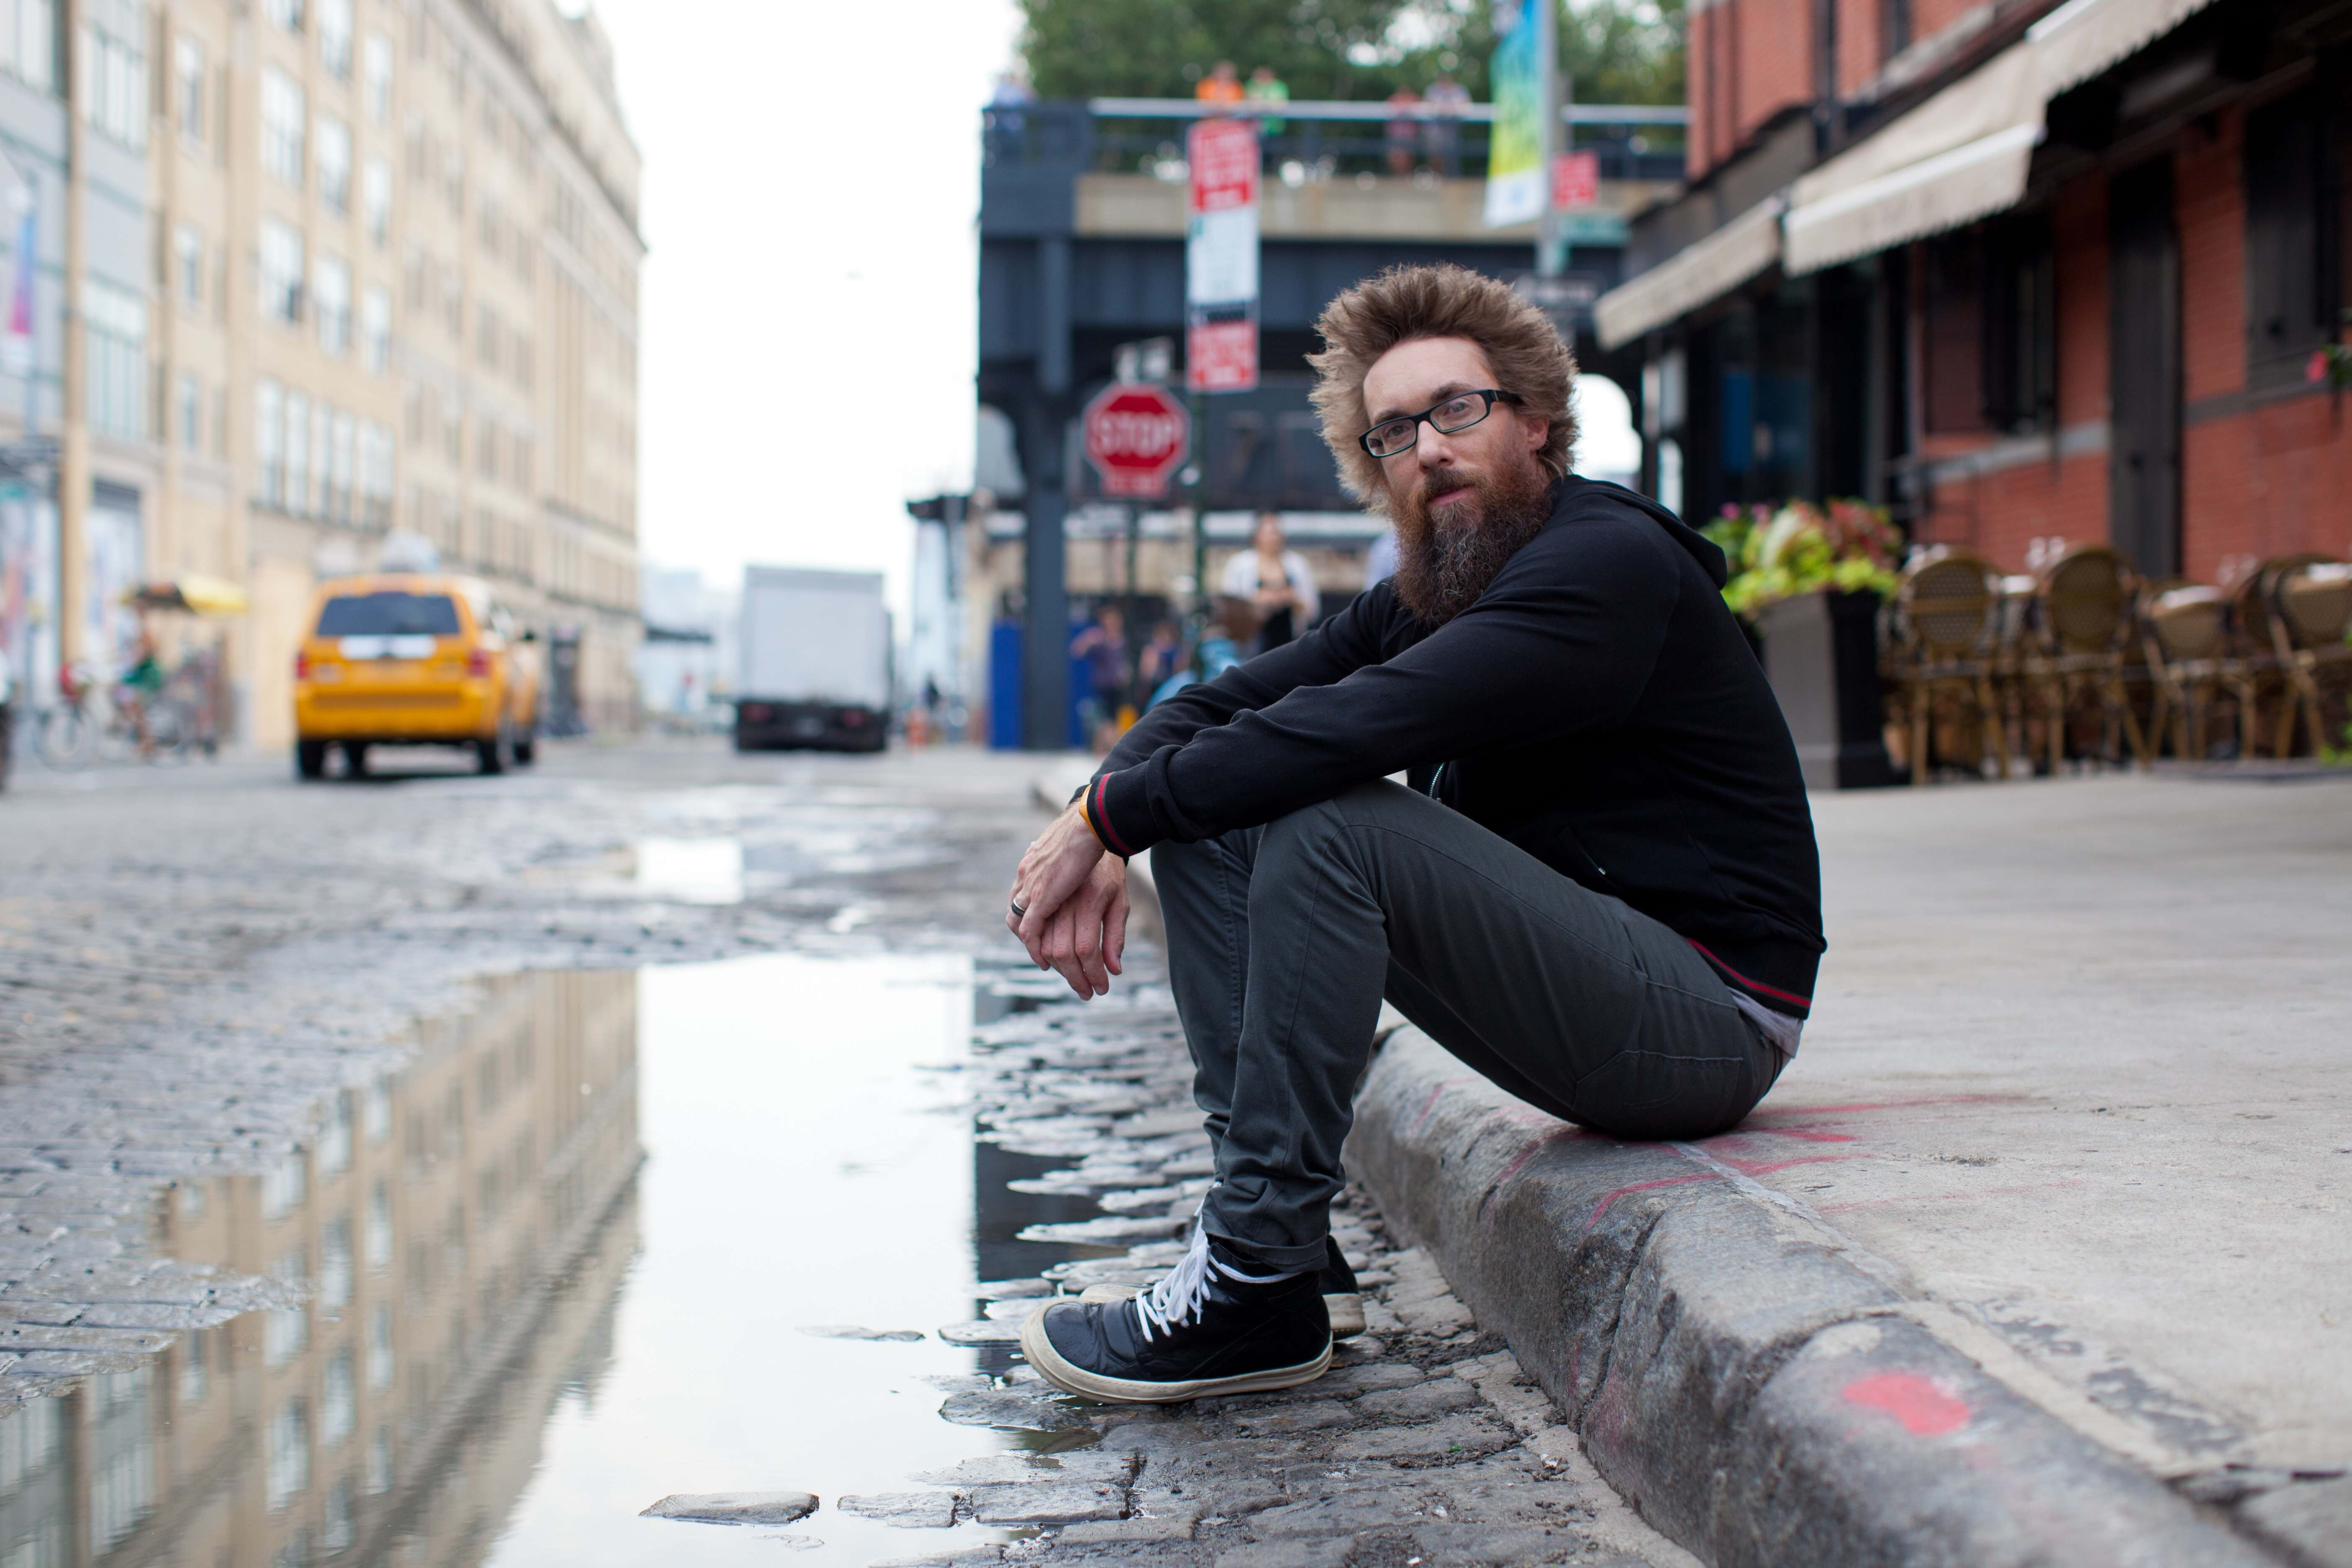 David Crowder Band - SMS  Shine [SMS  Que Brille]